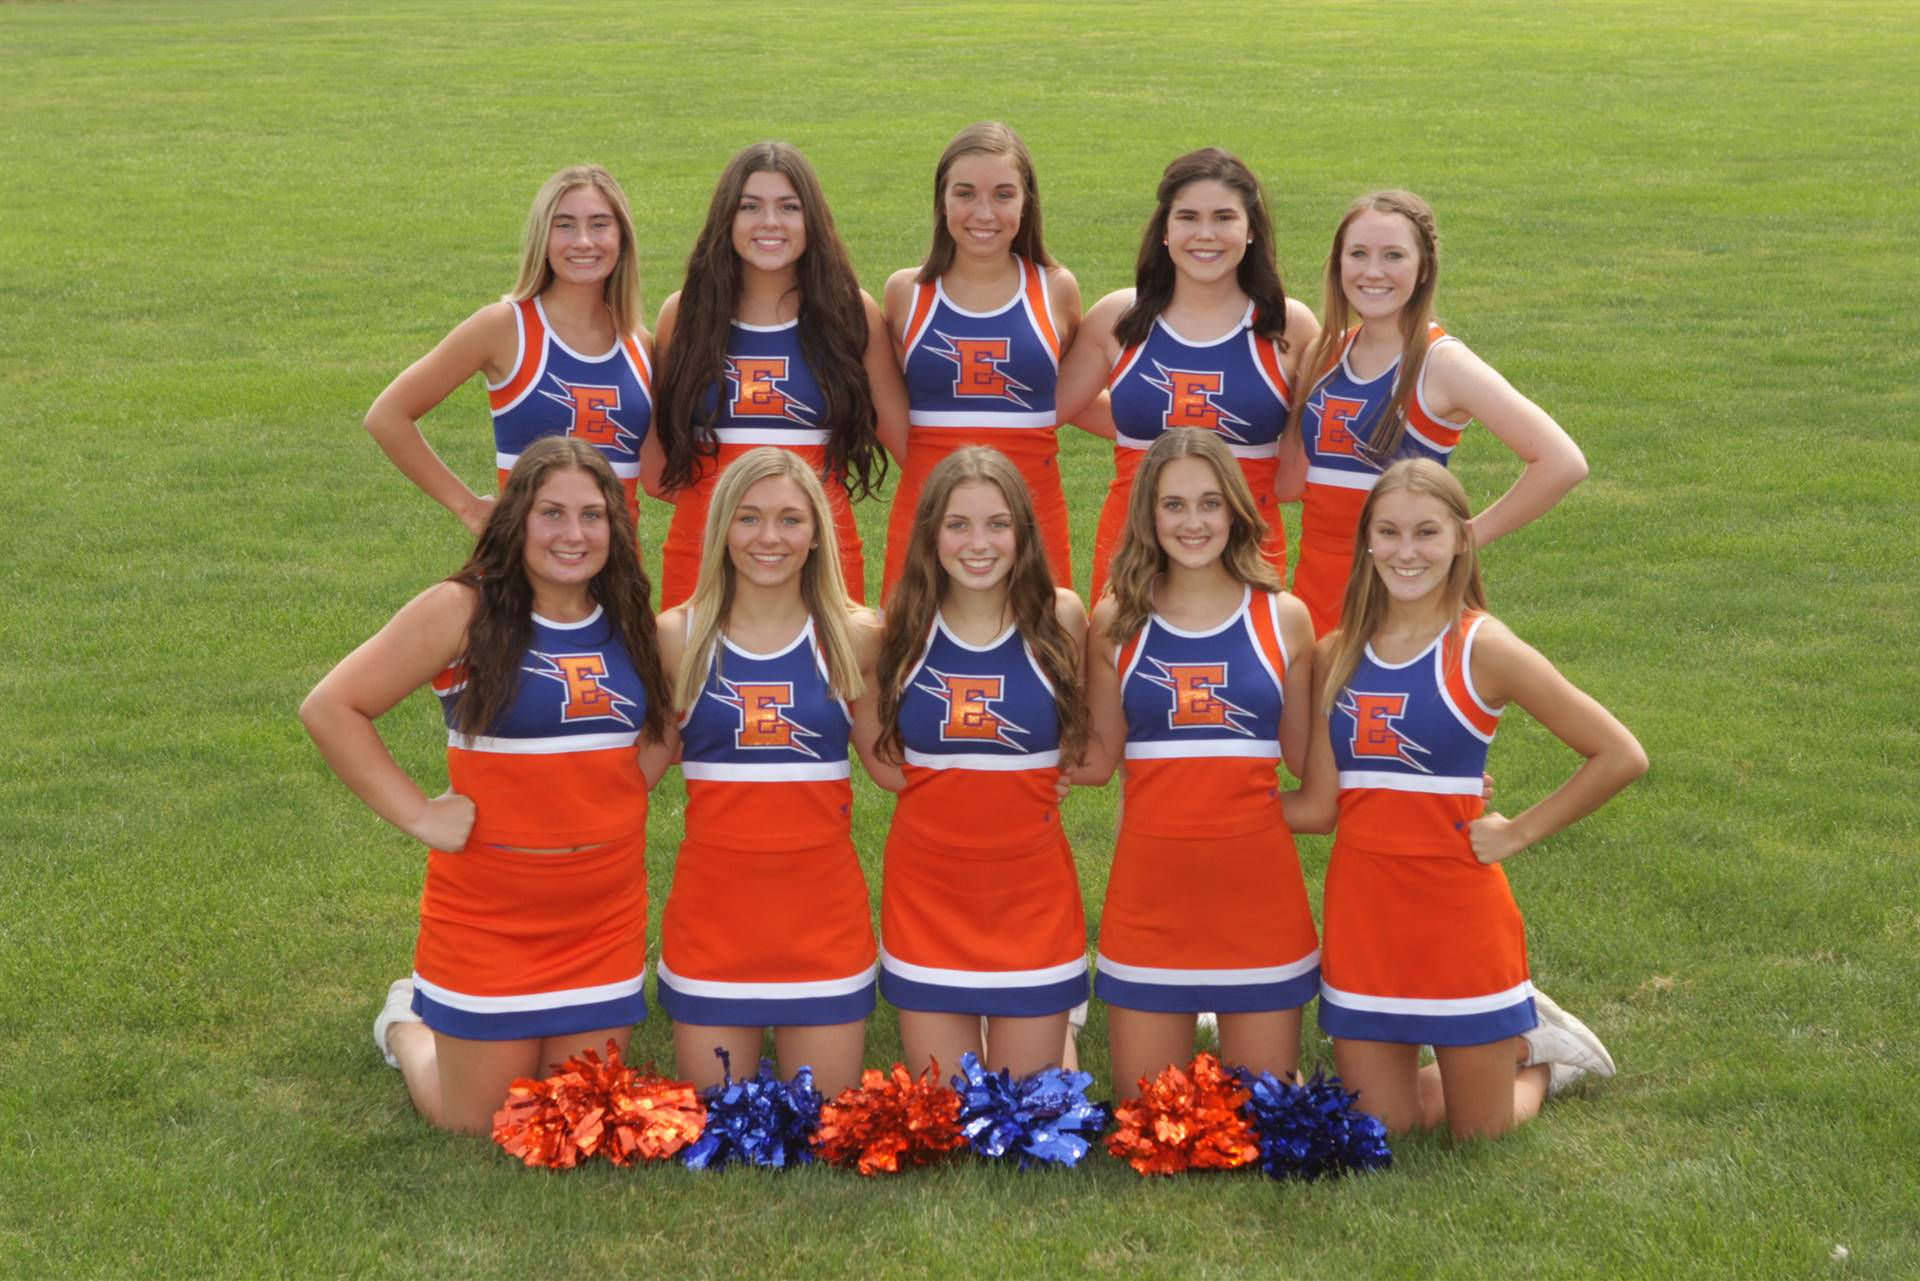 2019 Varsity Cheerleaders